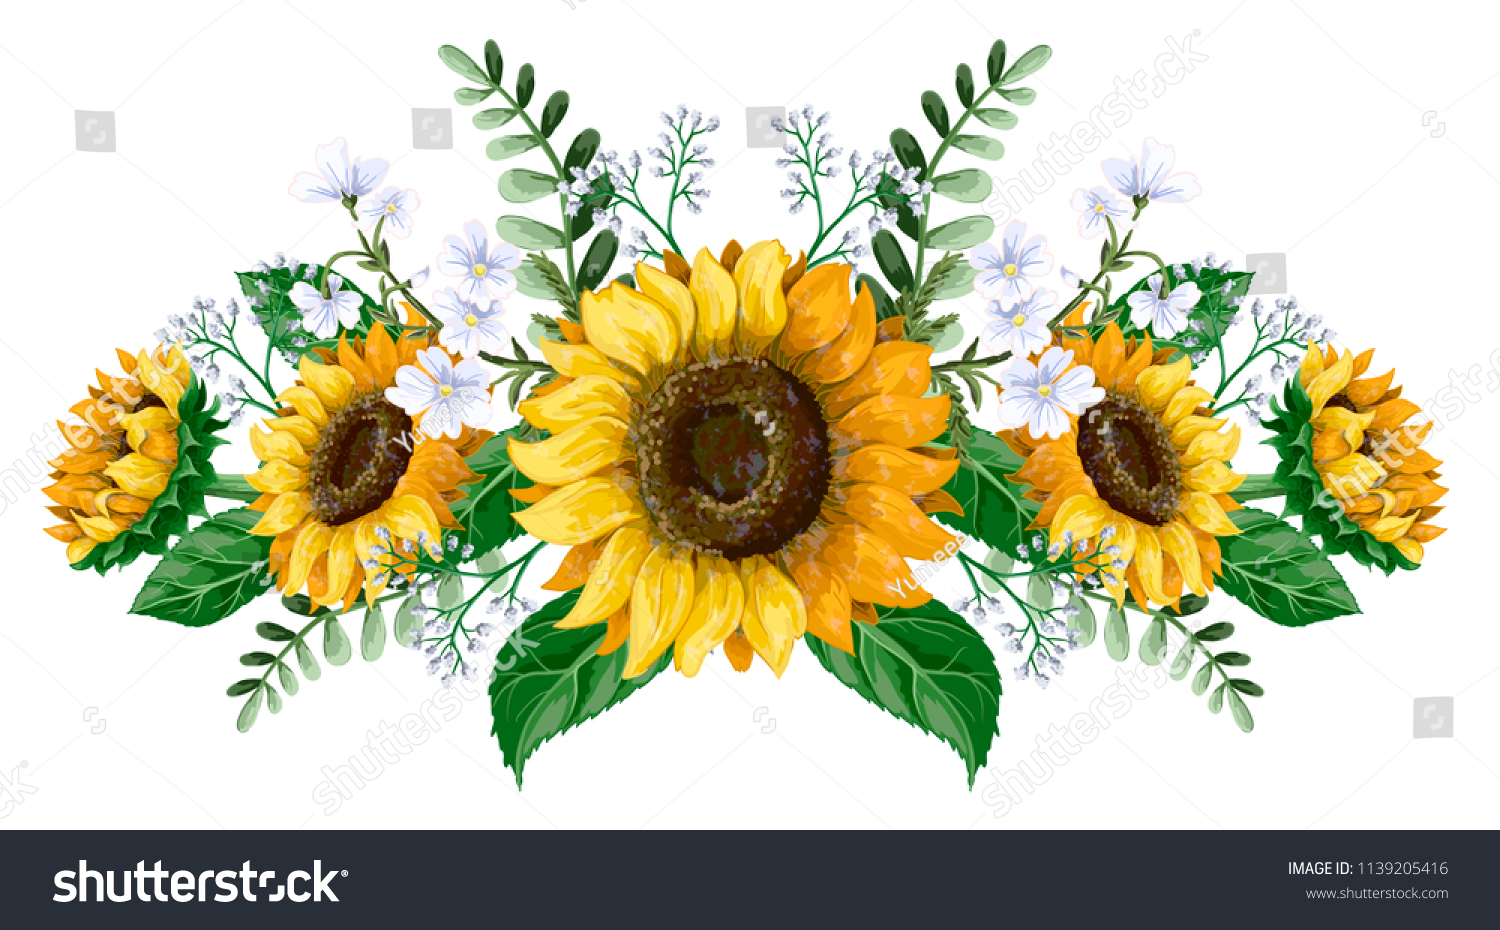 Sunflowers bouquet with wild flower isolated.